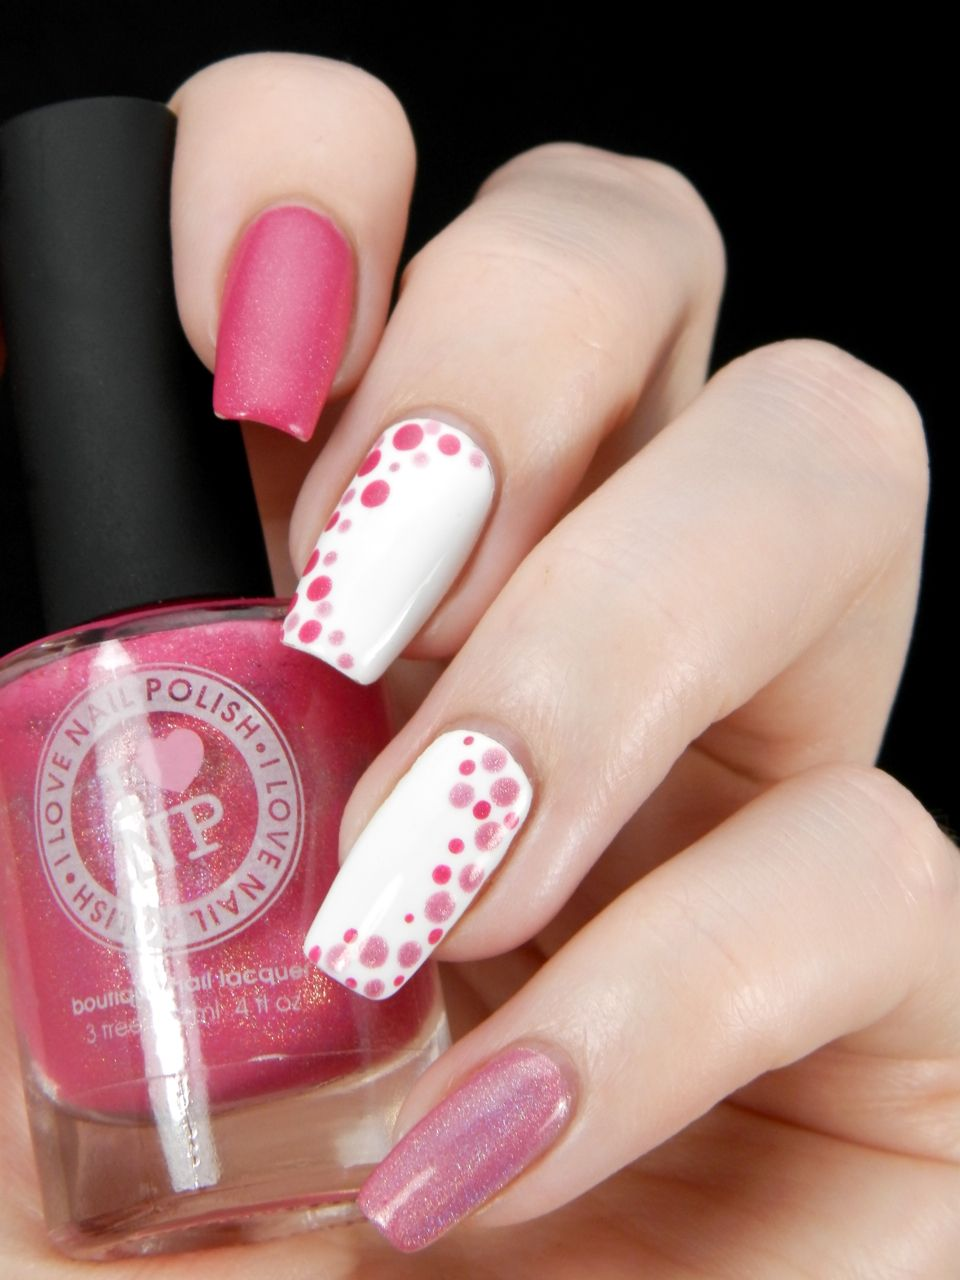 Better nail day nail nails nailart decoracion de uñas